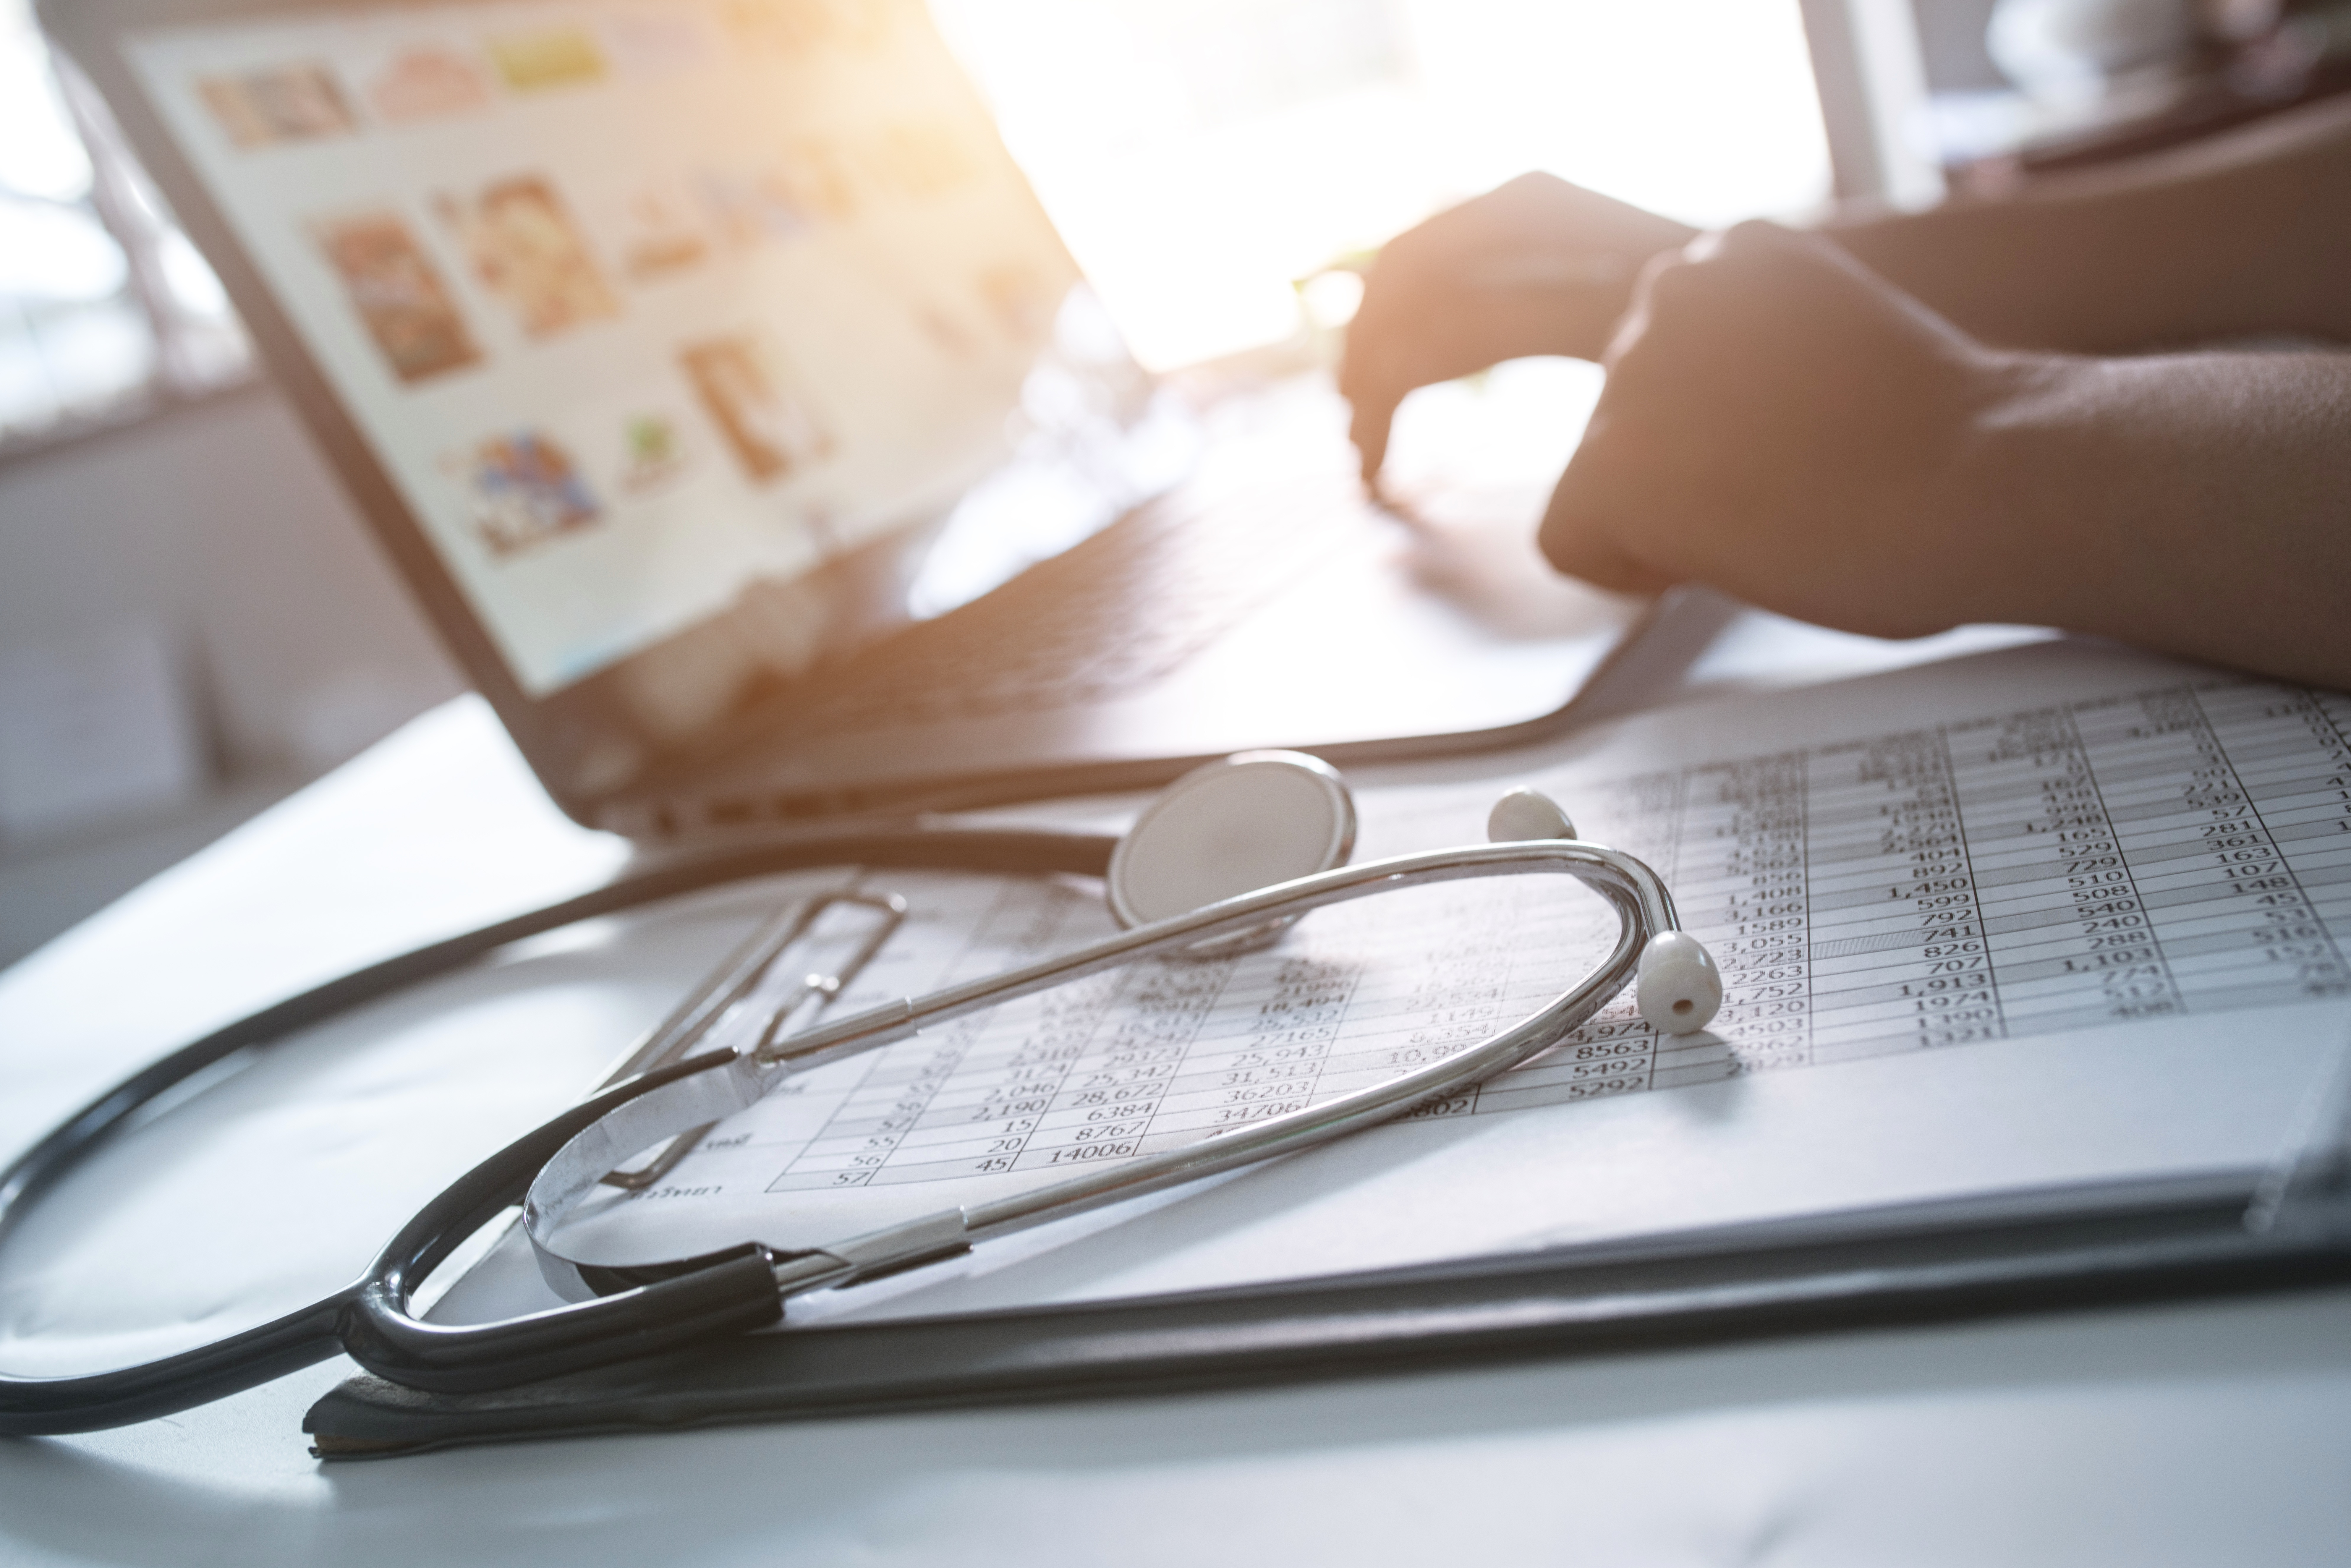 Deploy the Right Technology Solution for Your Clinical Environment